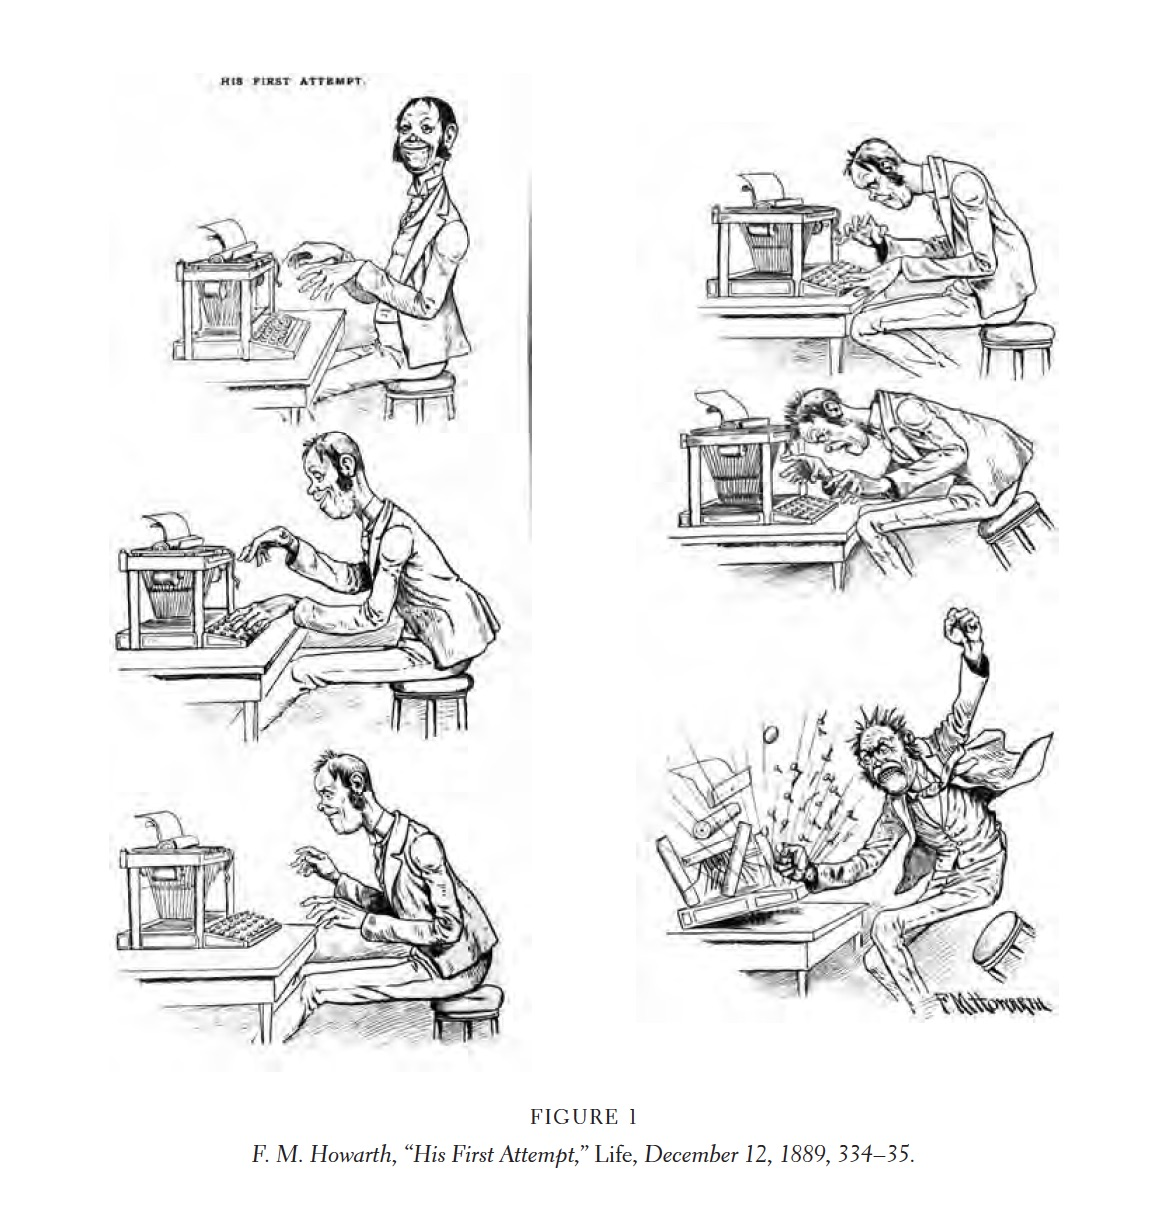 Figure 1, Six image serial comic depicting a writer's first attempt at a typewriter dispaying growing frustration as the images progress, ending with the final panel showing the writer losing his temper and pounding the keys. His First Attempt comic. F.M. Howarth, Life Magazine, December 12th, 1889, 334-35